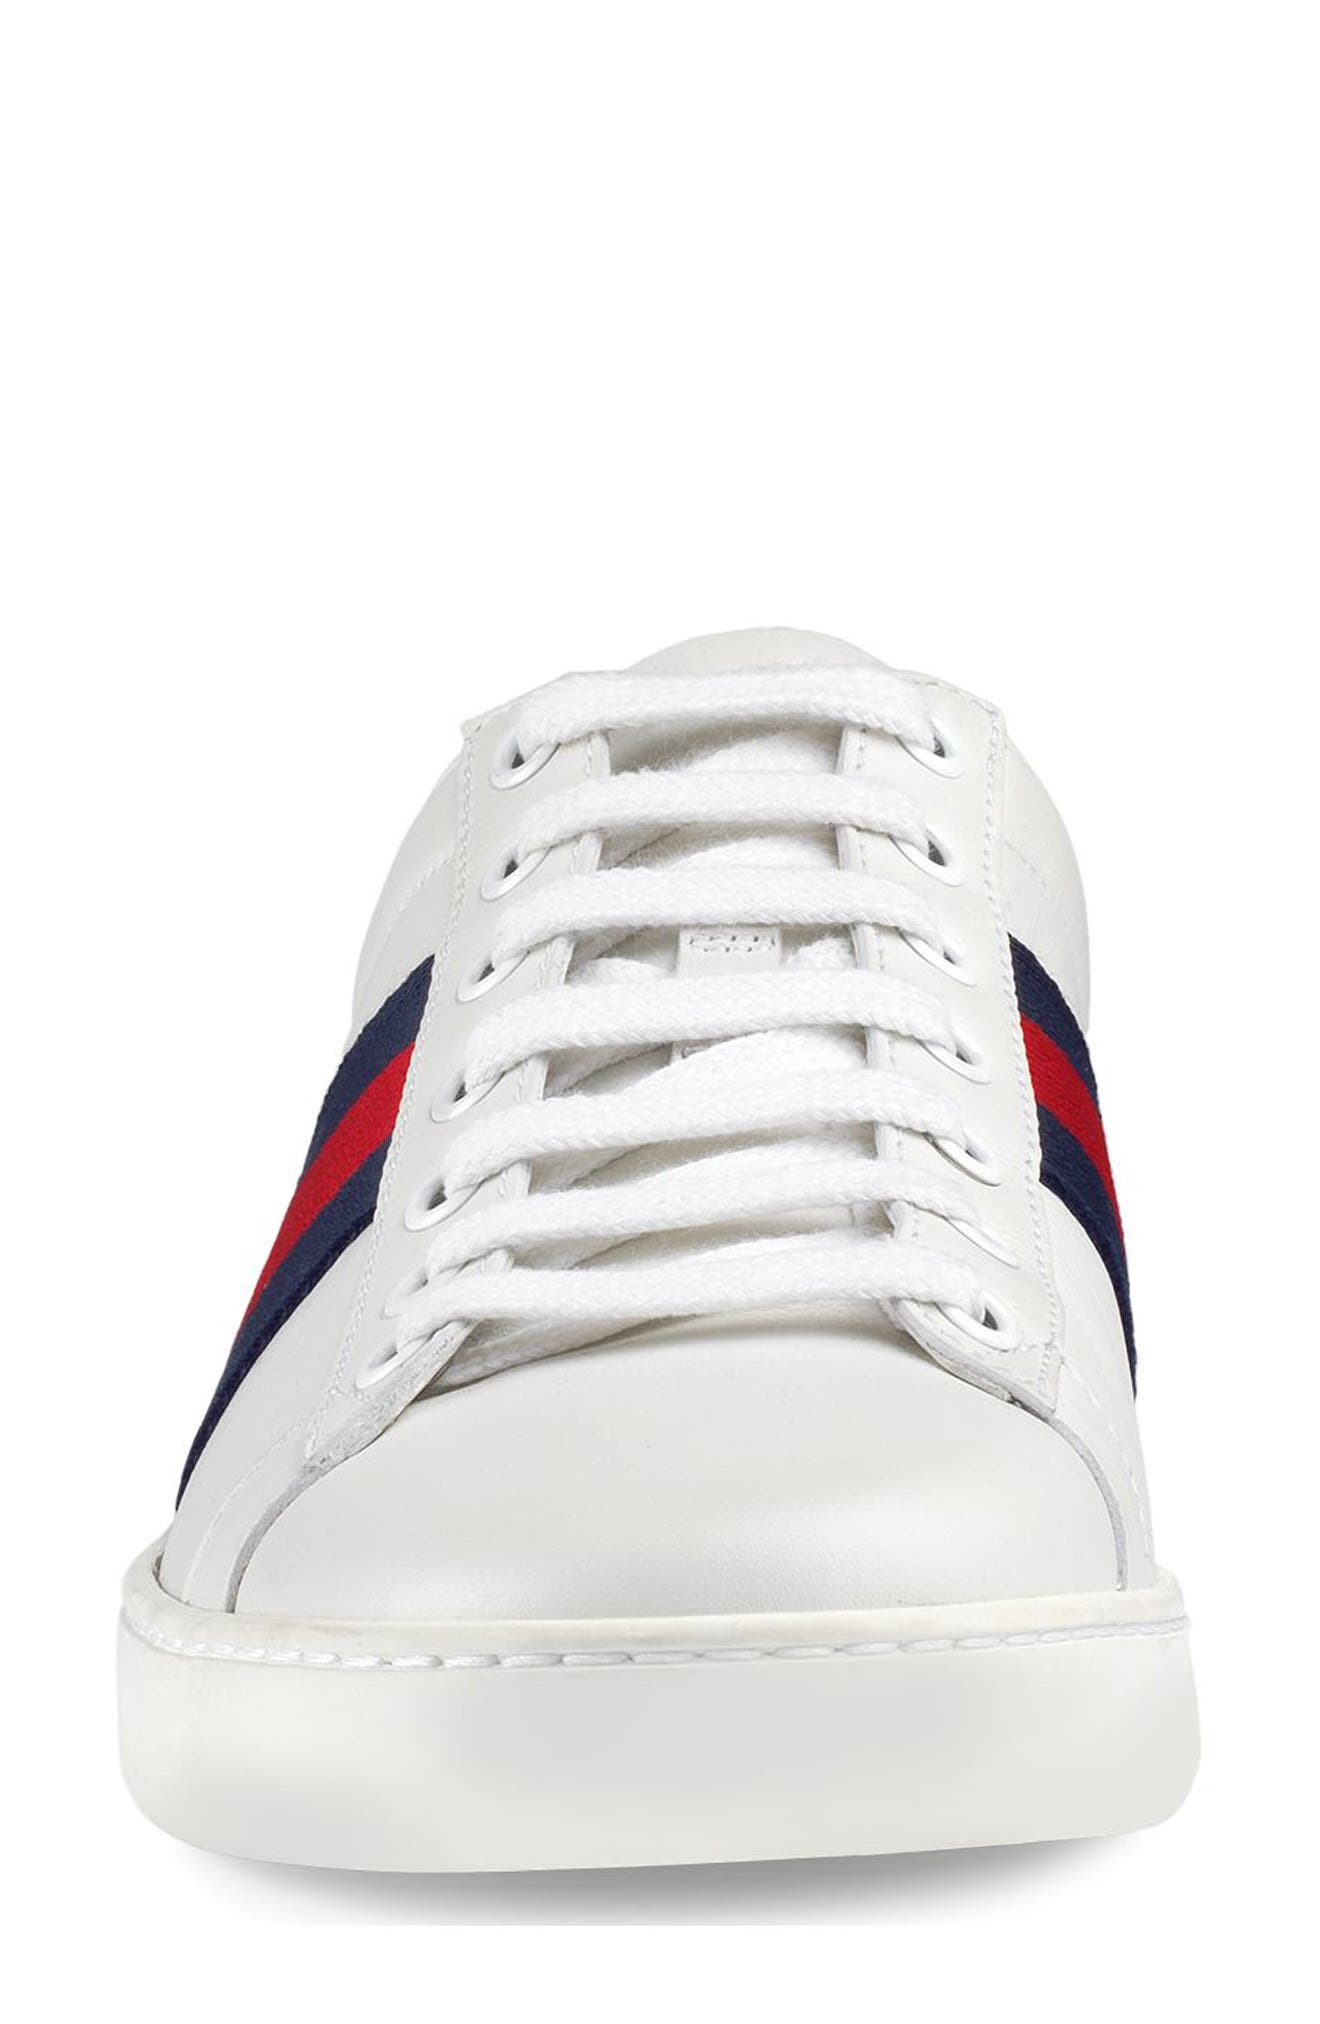 GUCCI,                             'New Ace' Sneaker,                             Alternate thumbnail 3, color,                             101